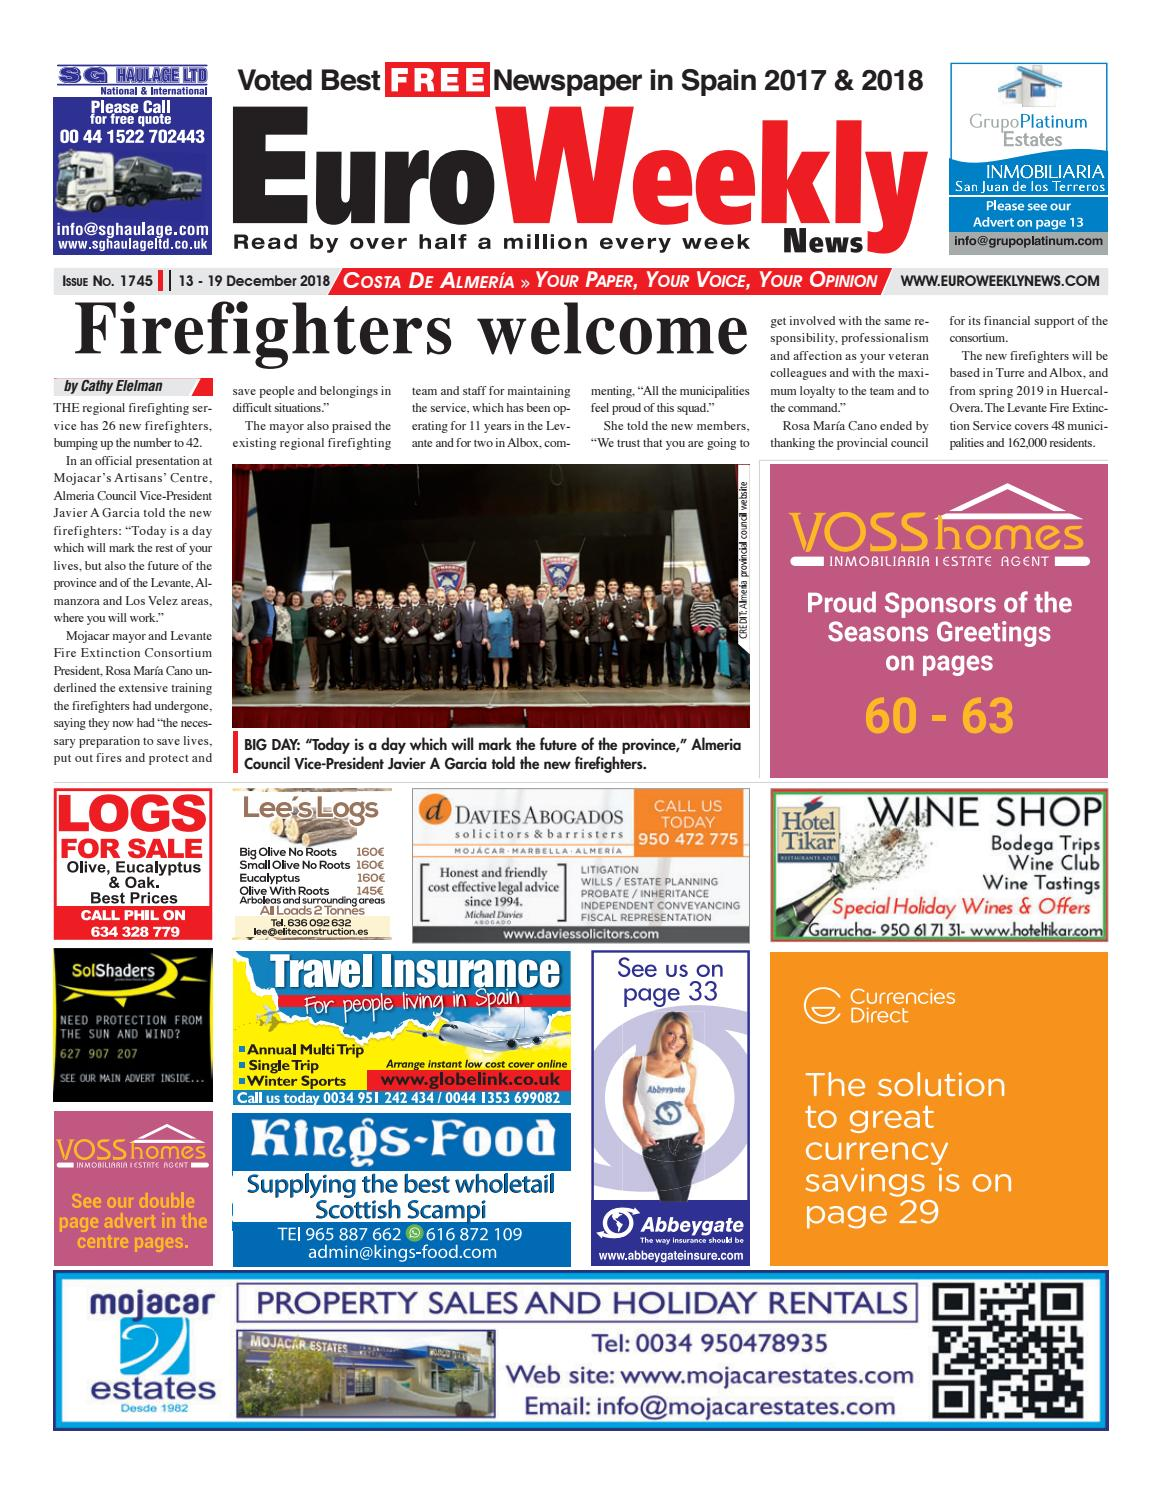 Euro Weekly News - Costa de Almeria 13-19 December 2018 Issue 1745 ... 7bfbd5b1508f7